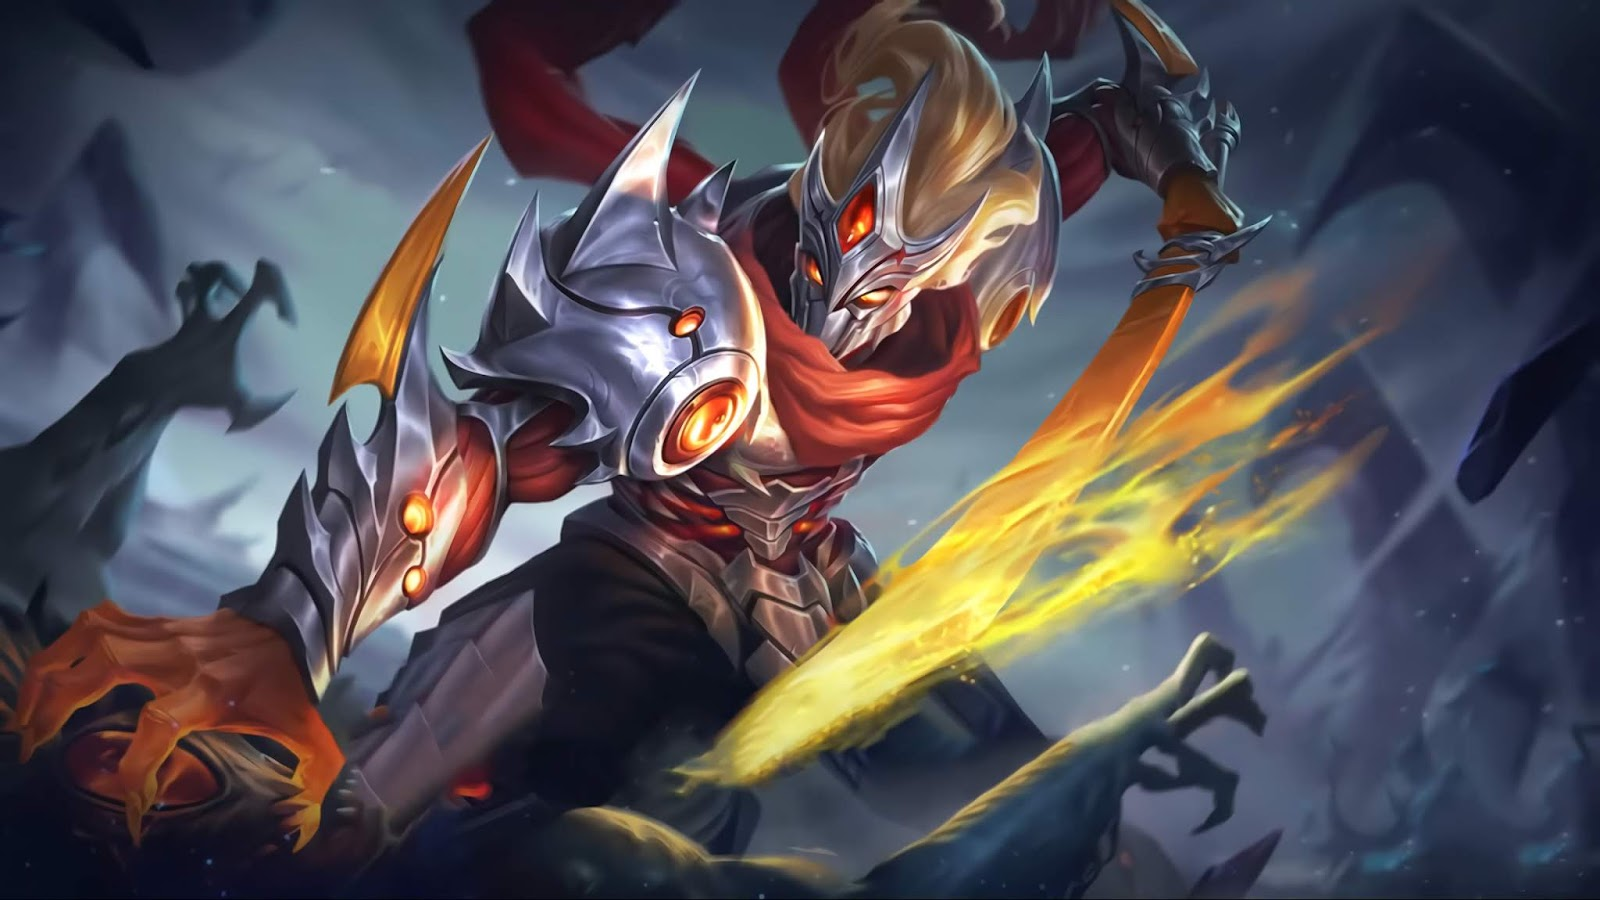 kumpulan wallpaper hd mobile legends part v - irumira